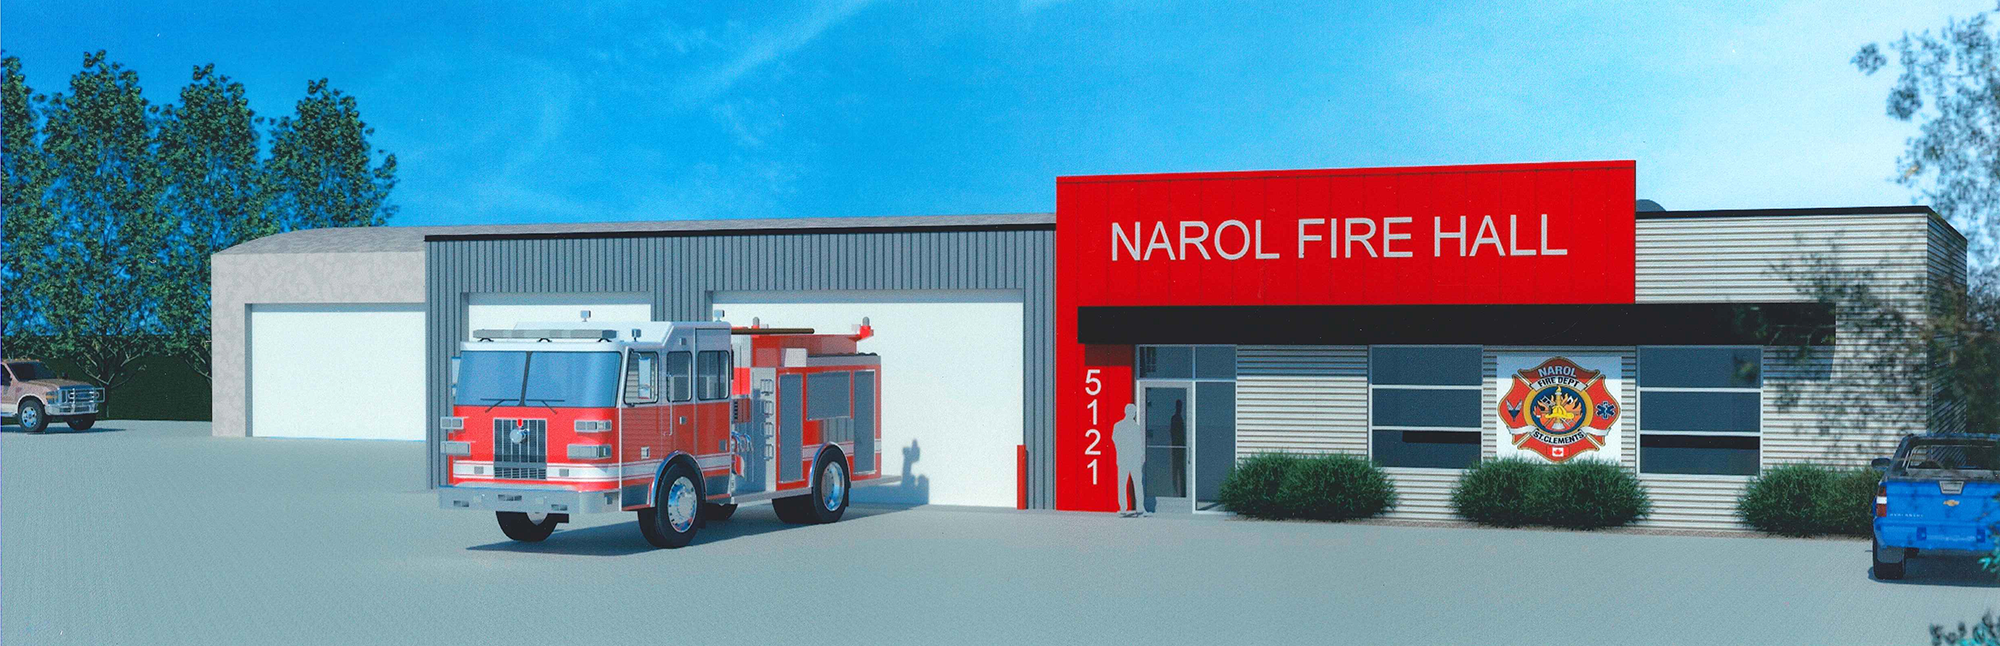 narol-fire-hall-expansion-design